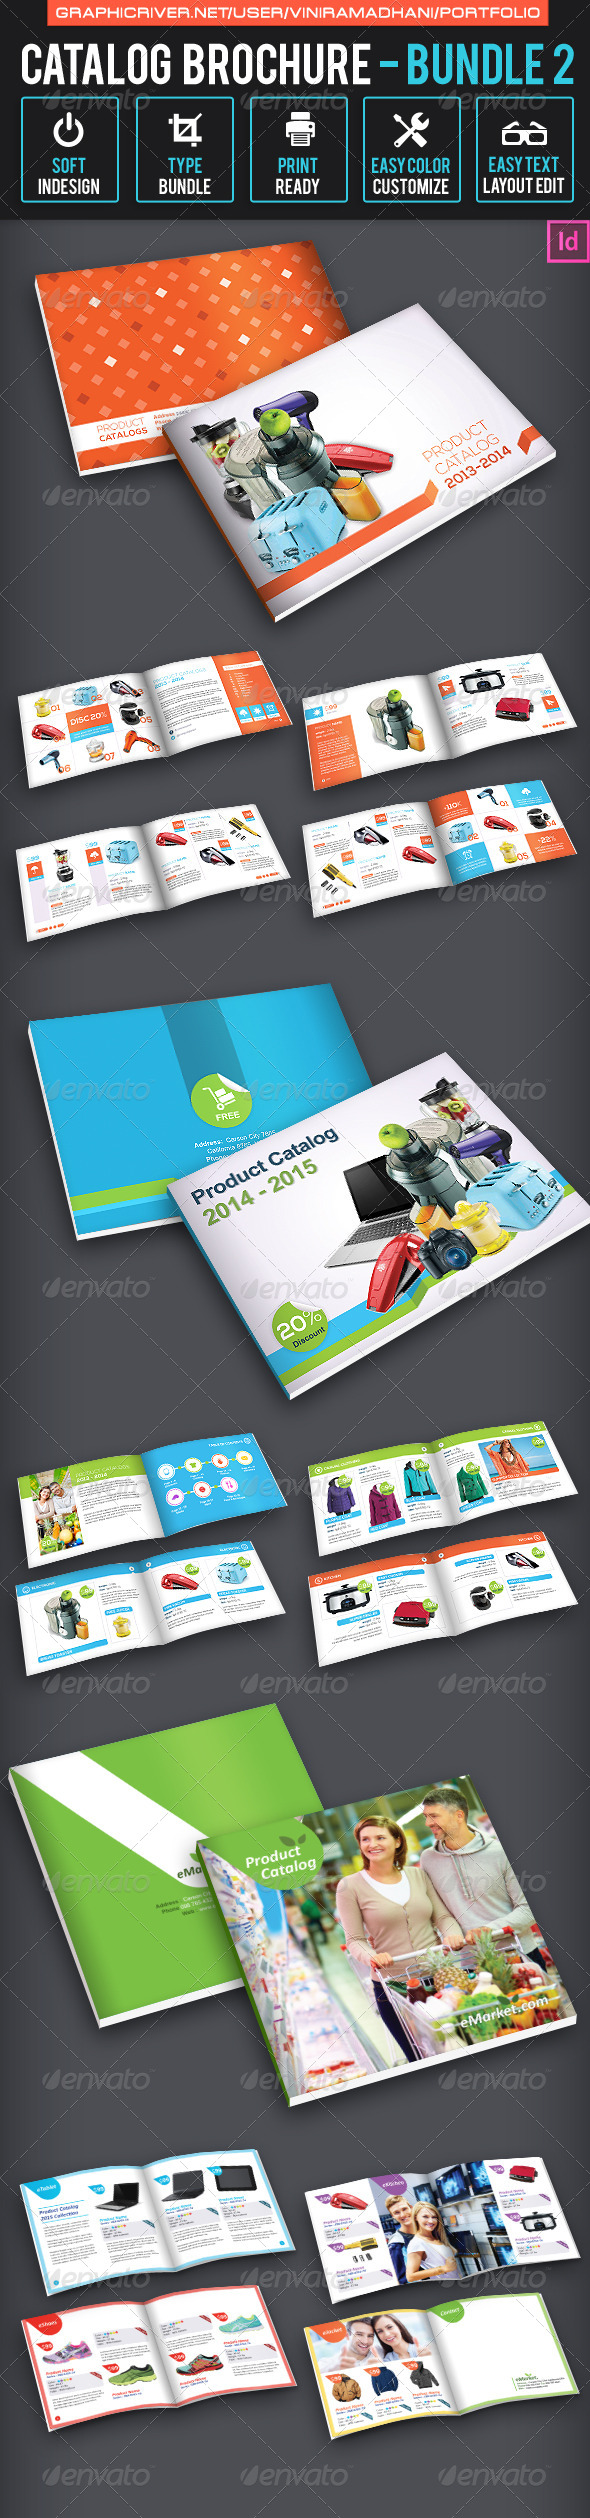 GraphicRiver Catalog Brochure Bundle 2 7094955